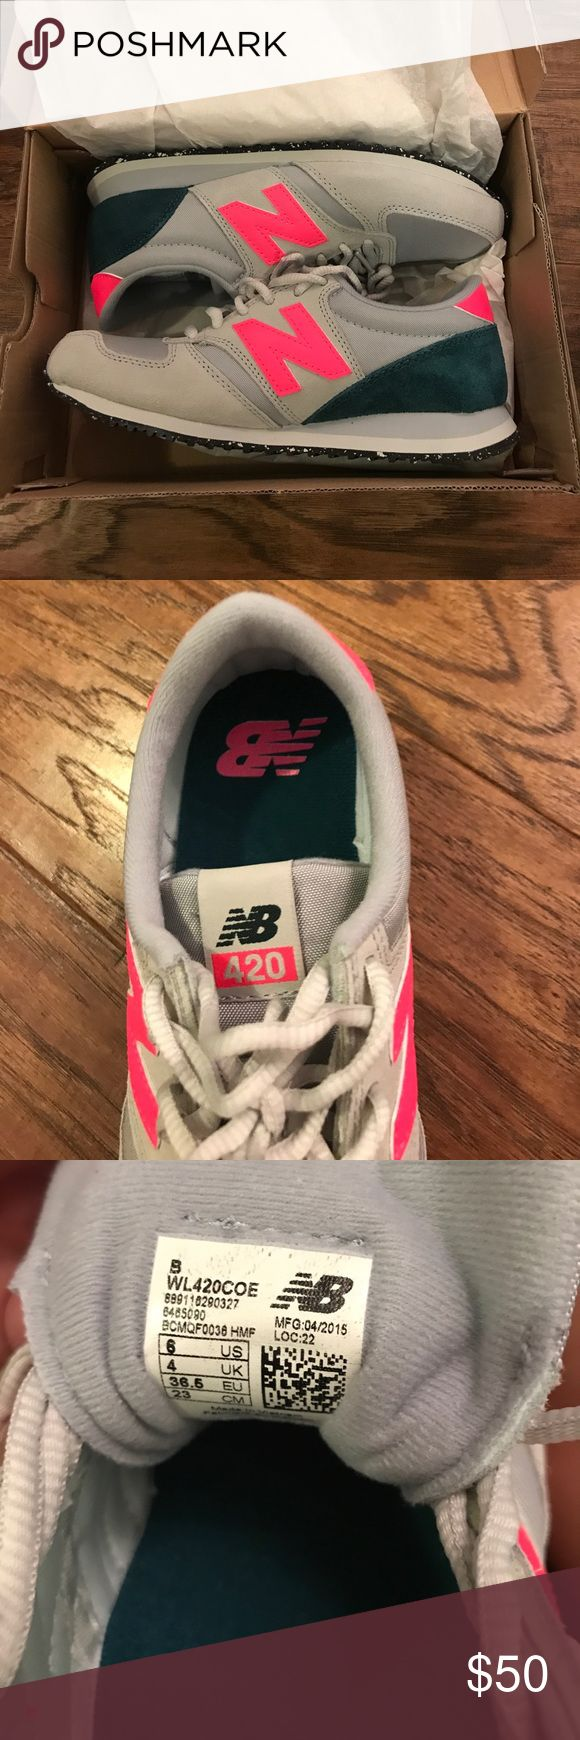 New balance 420 lifestyle shoes Never worn NB 420 lifestyle shoes in a women's size 6 New Balance Shoes Sneakers